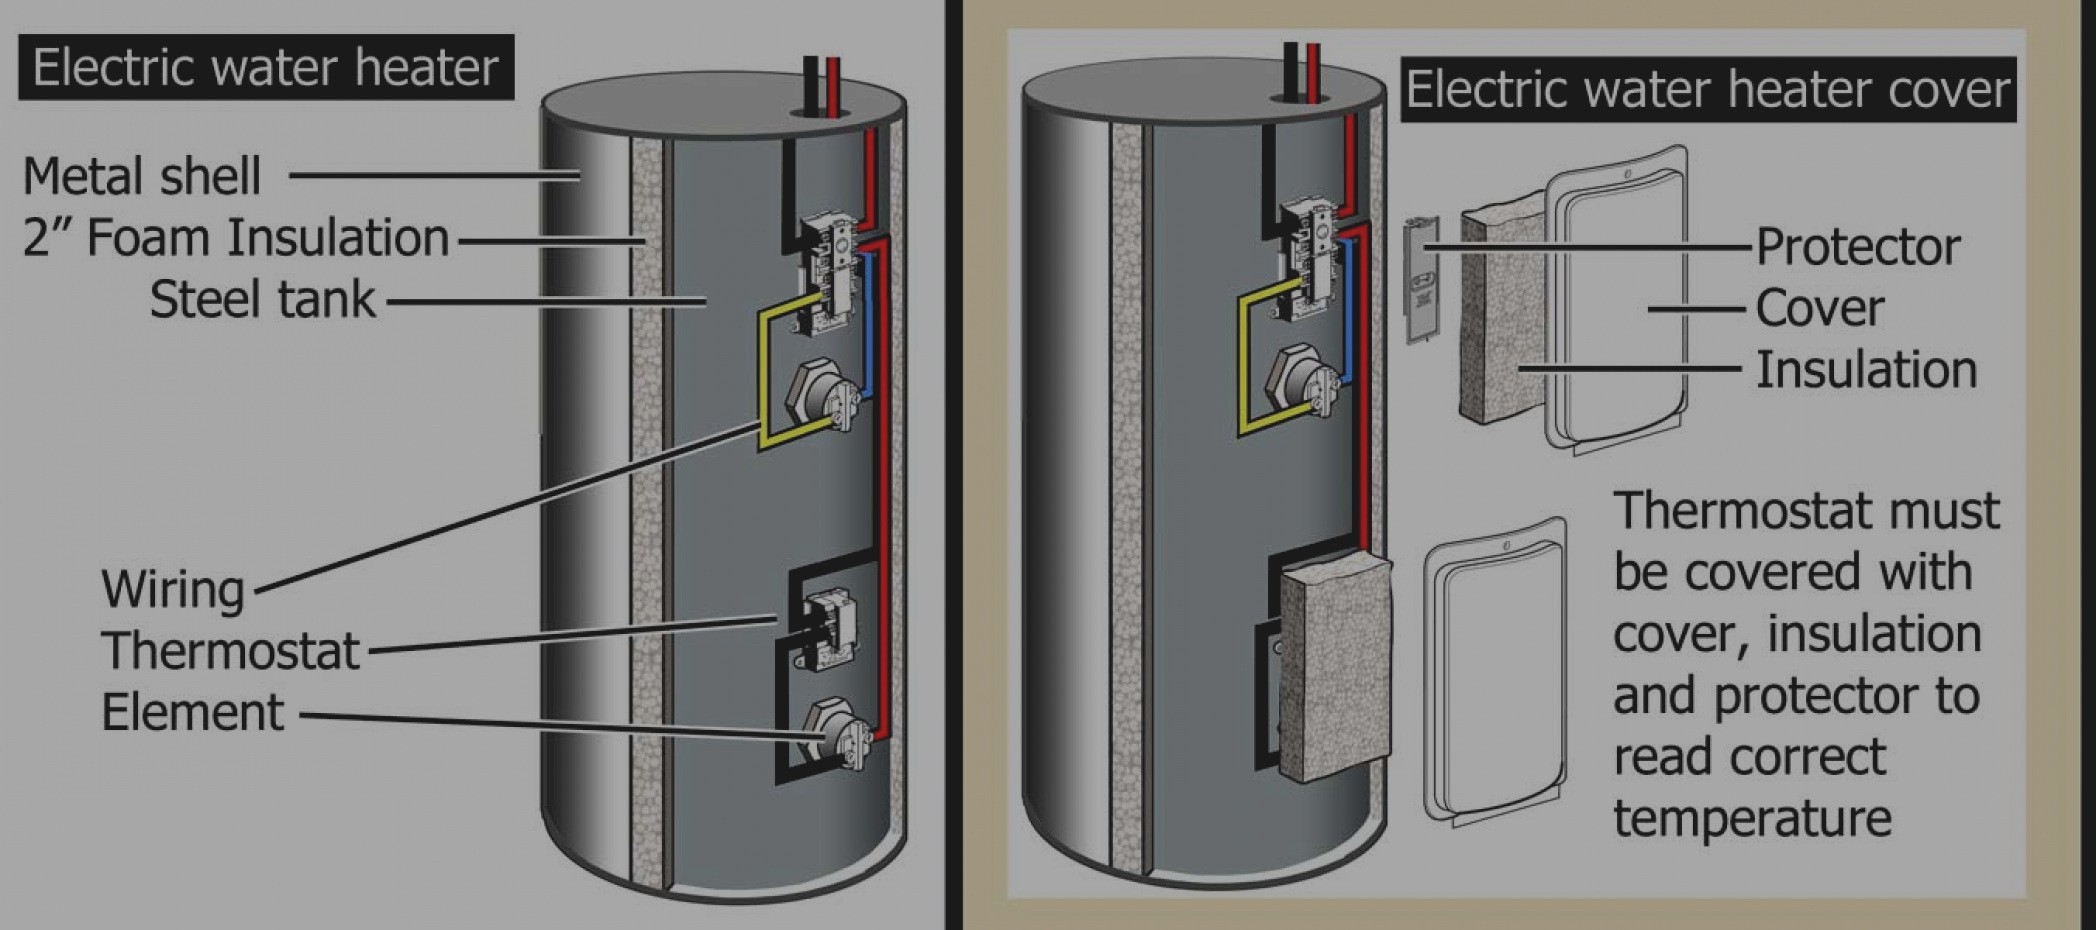 25 Trend Wiring Diagram For Electric Hot Water Heater Techrush Me